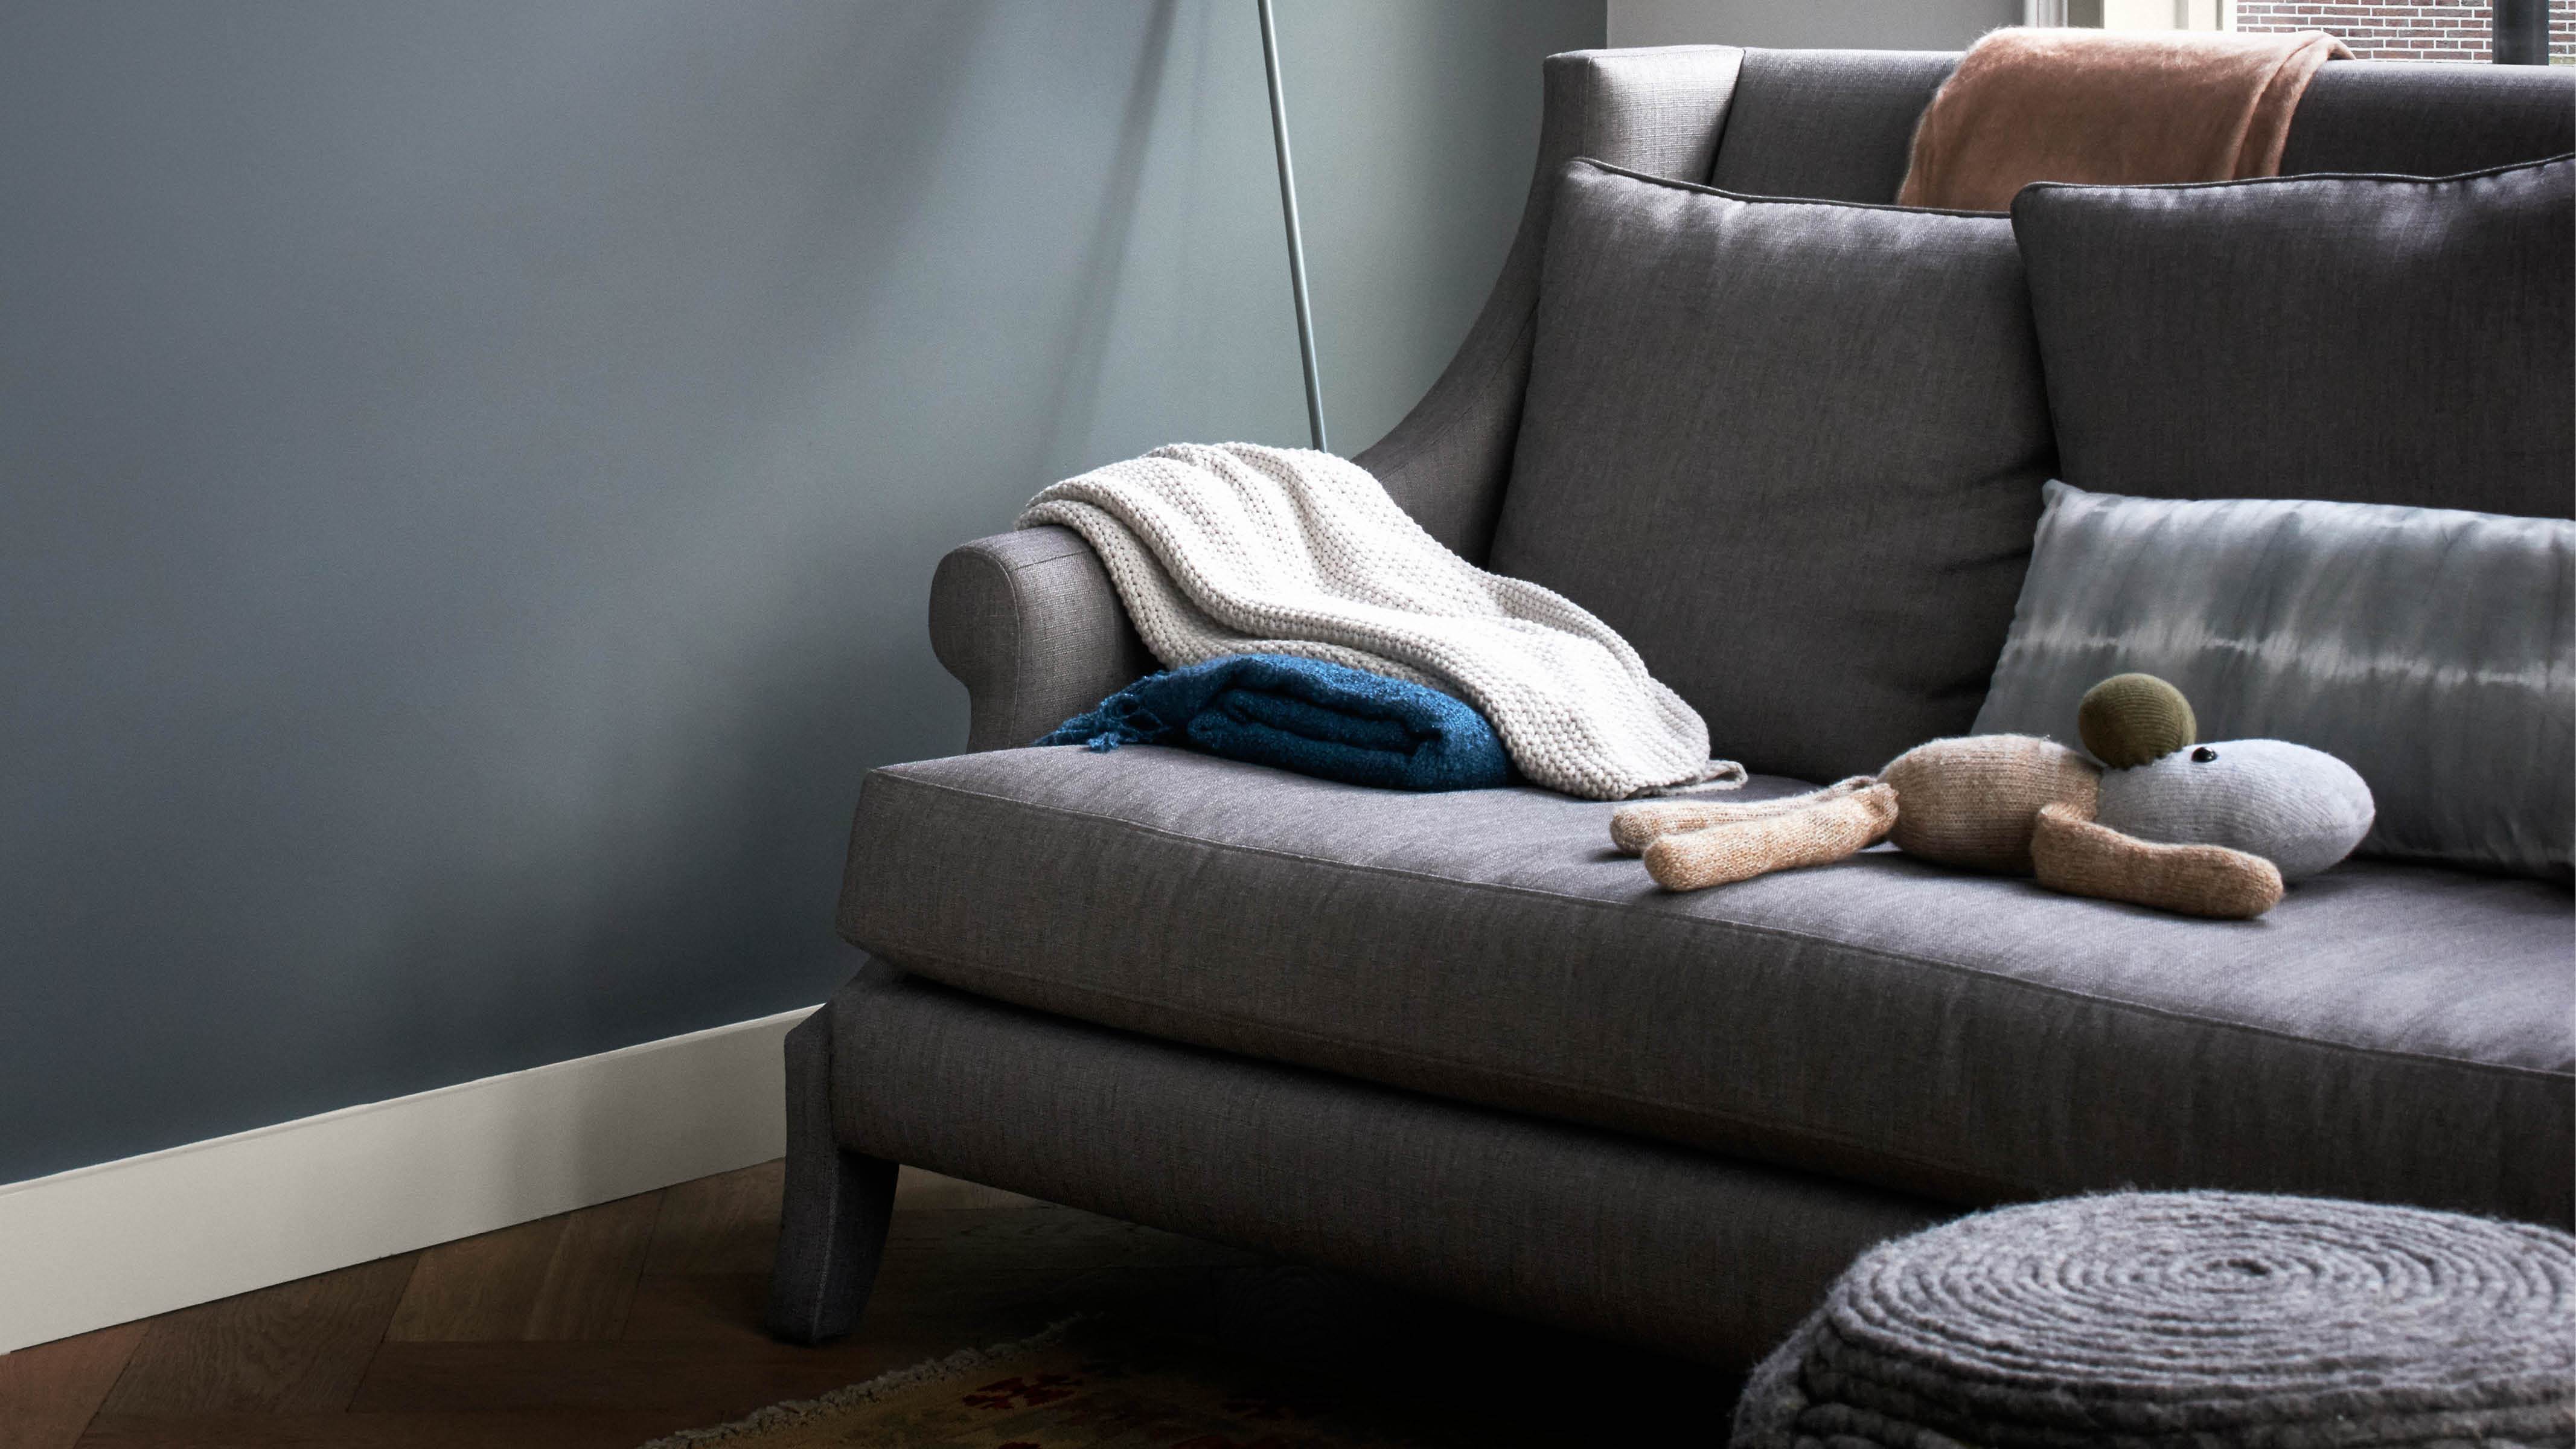 Muted hues like sea green, dove grey, and duck egg have a timeless quality that will evoke a restful environment.